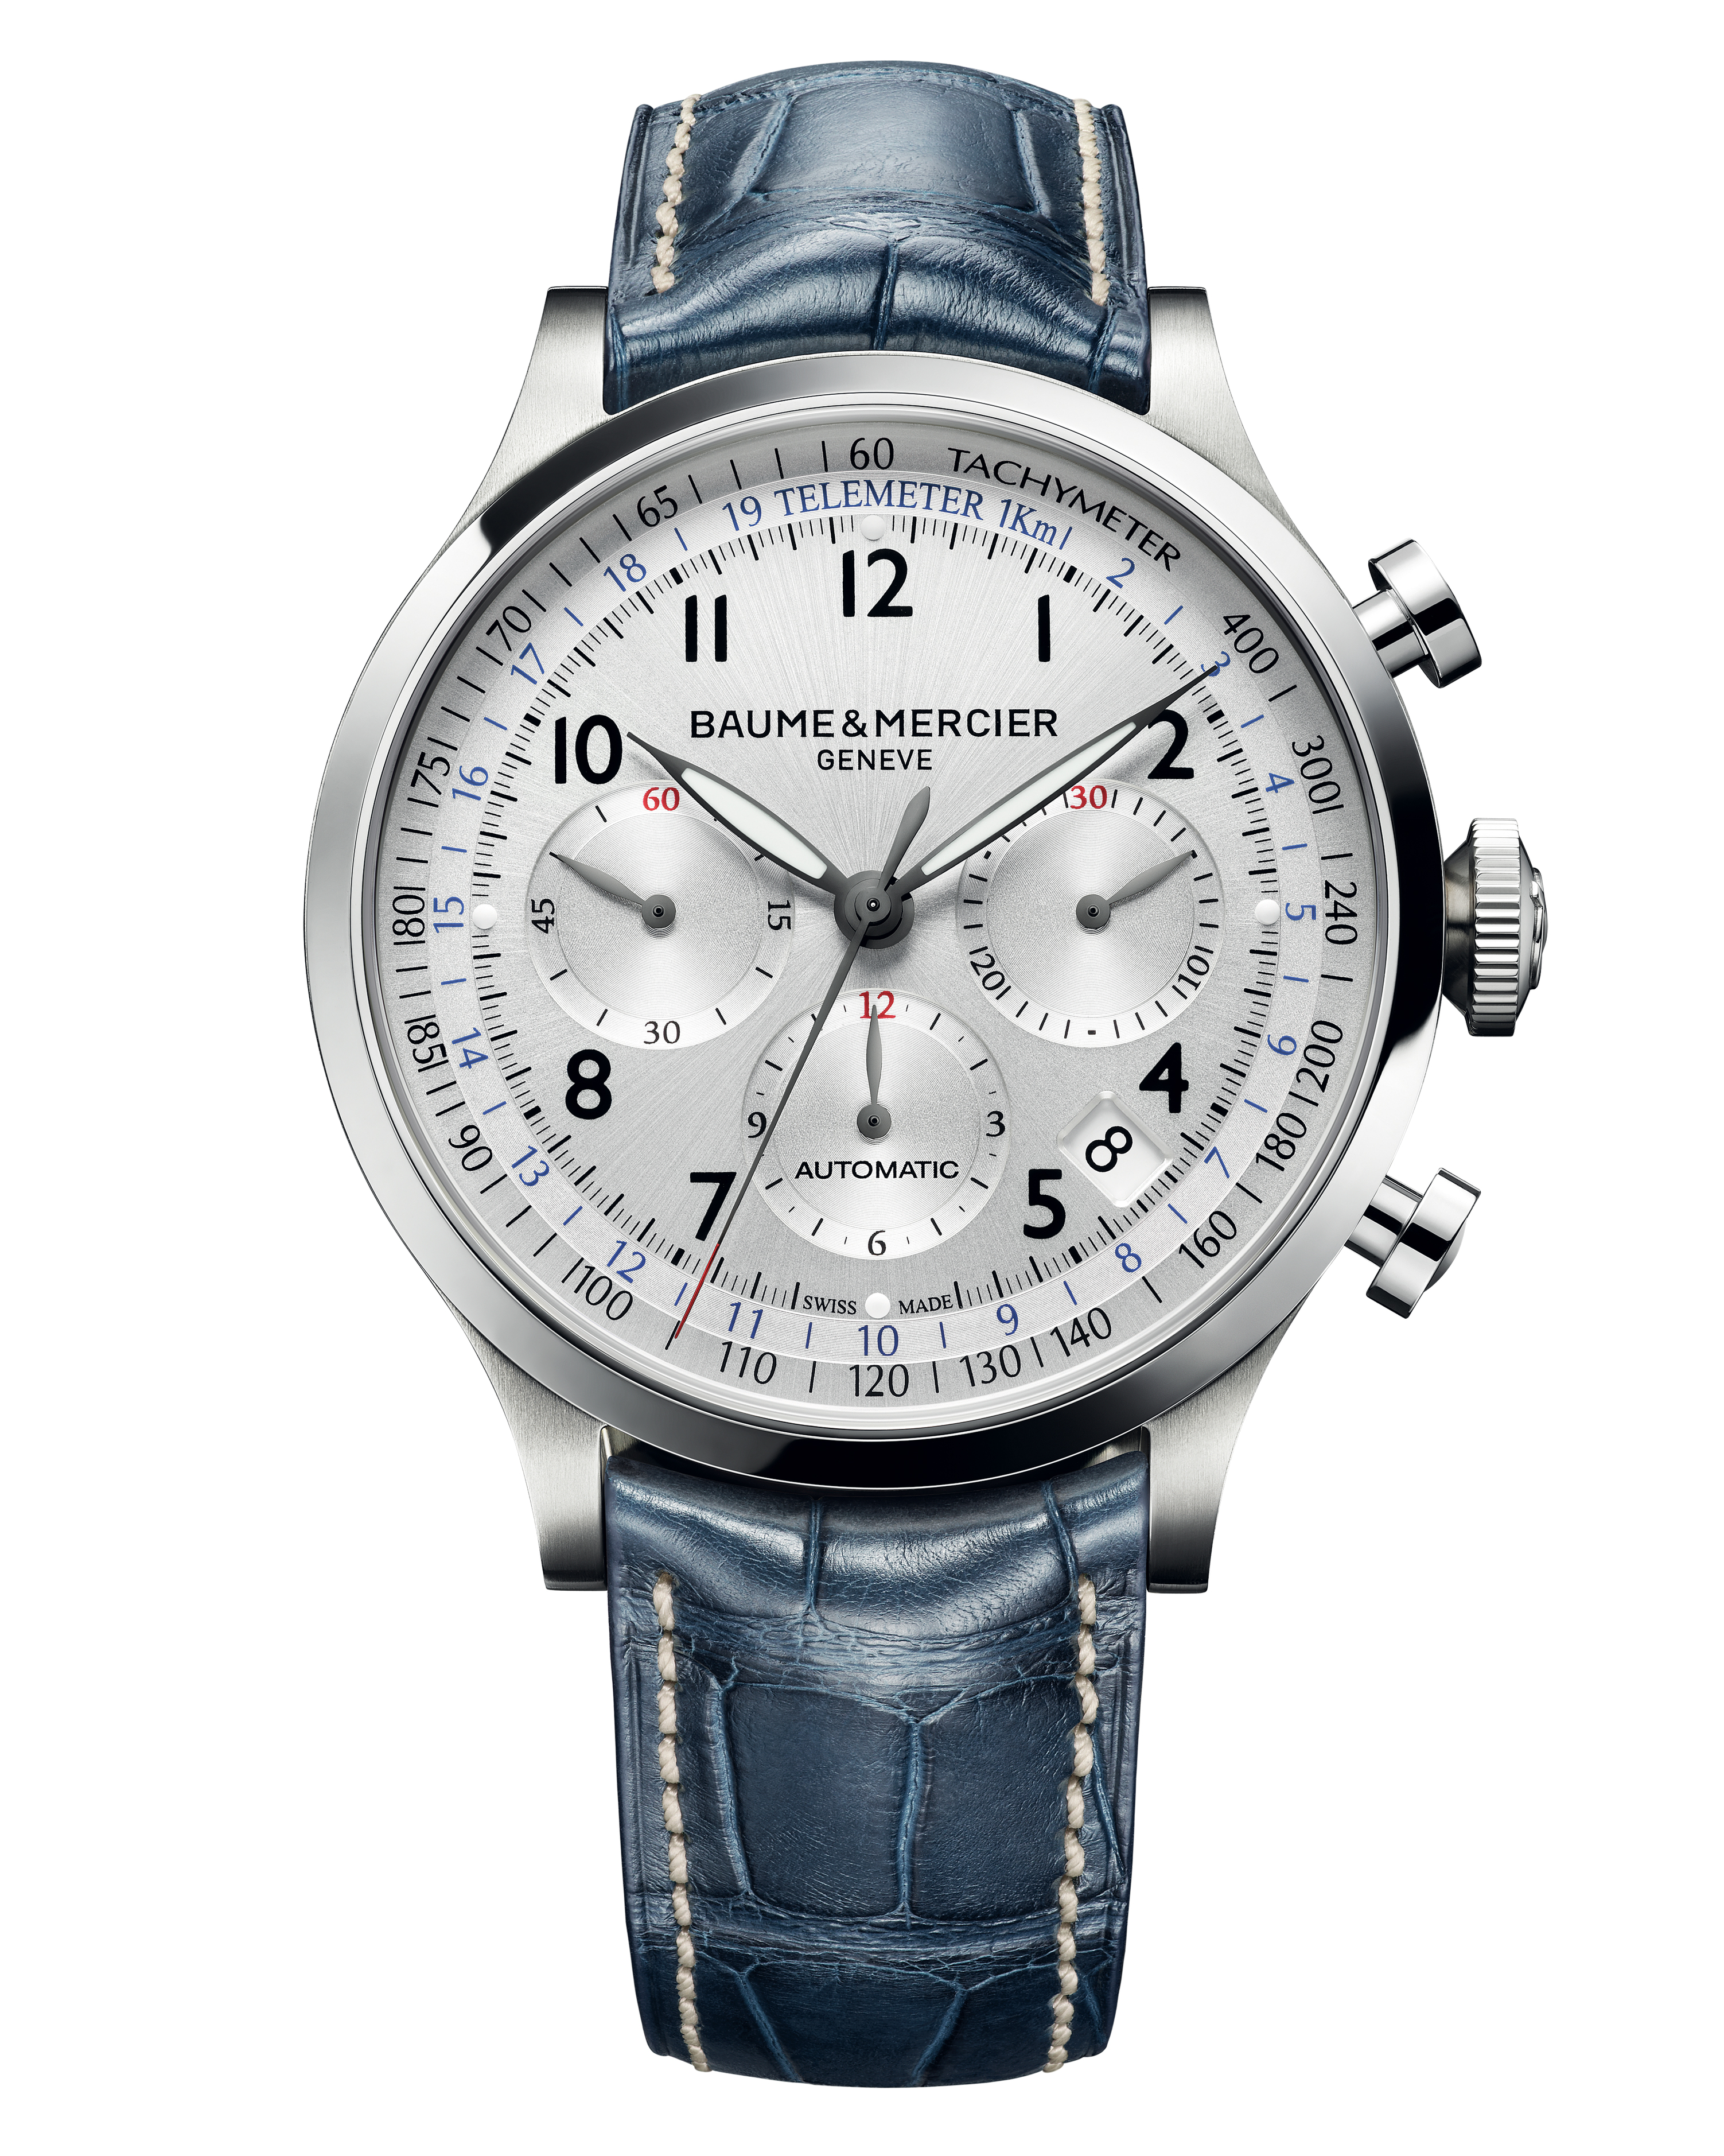 baume-mercier-watch-capeland-10063-0514.jpg